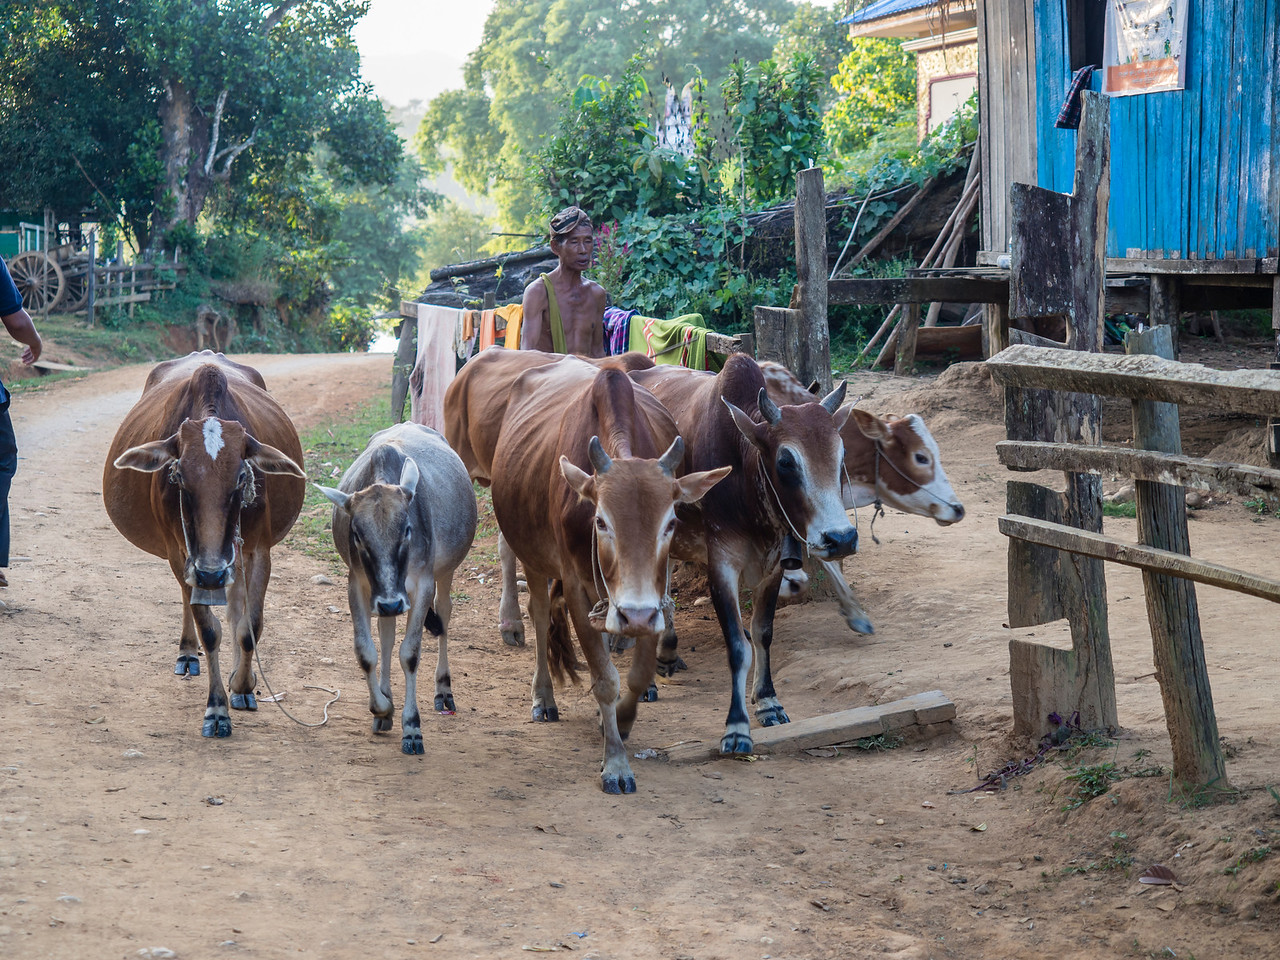 Man with oxen, Shan village